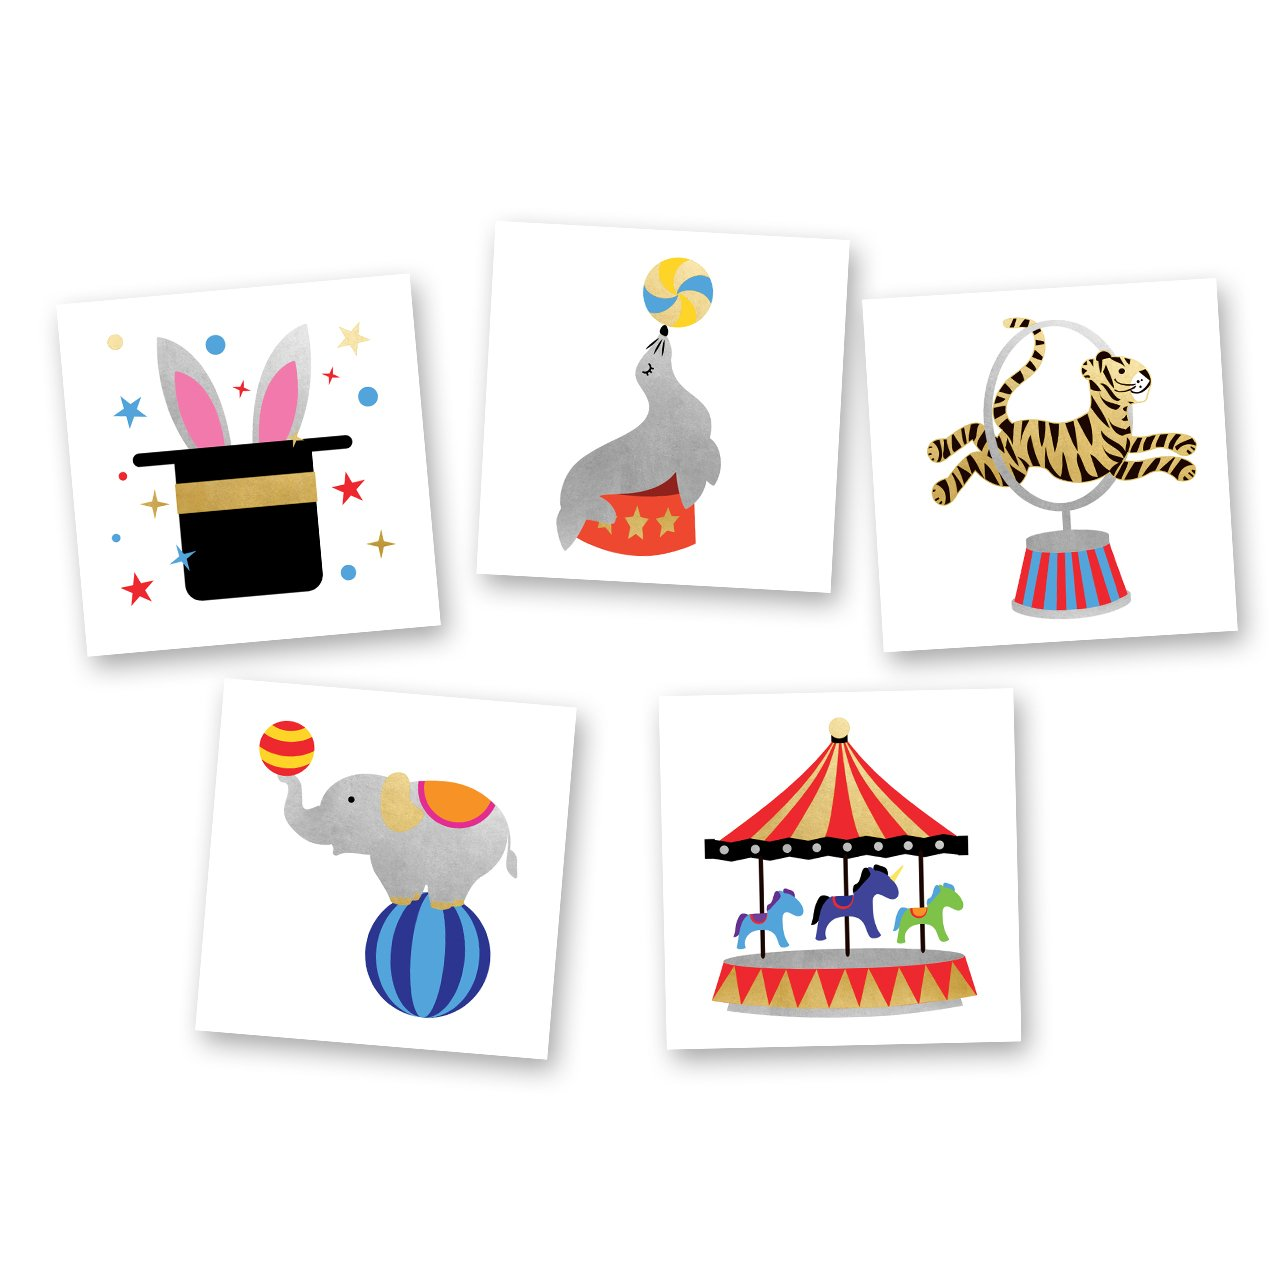 Circus Variety Set includes 25 assorted premium waterproof colorful metallic gold/silver/black kids temporary foil Flash Tattoos, party favor